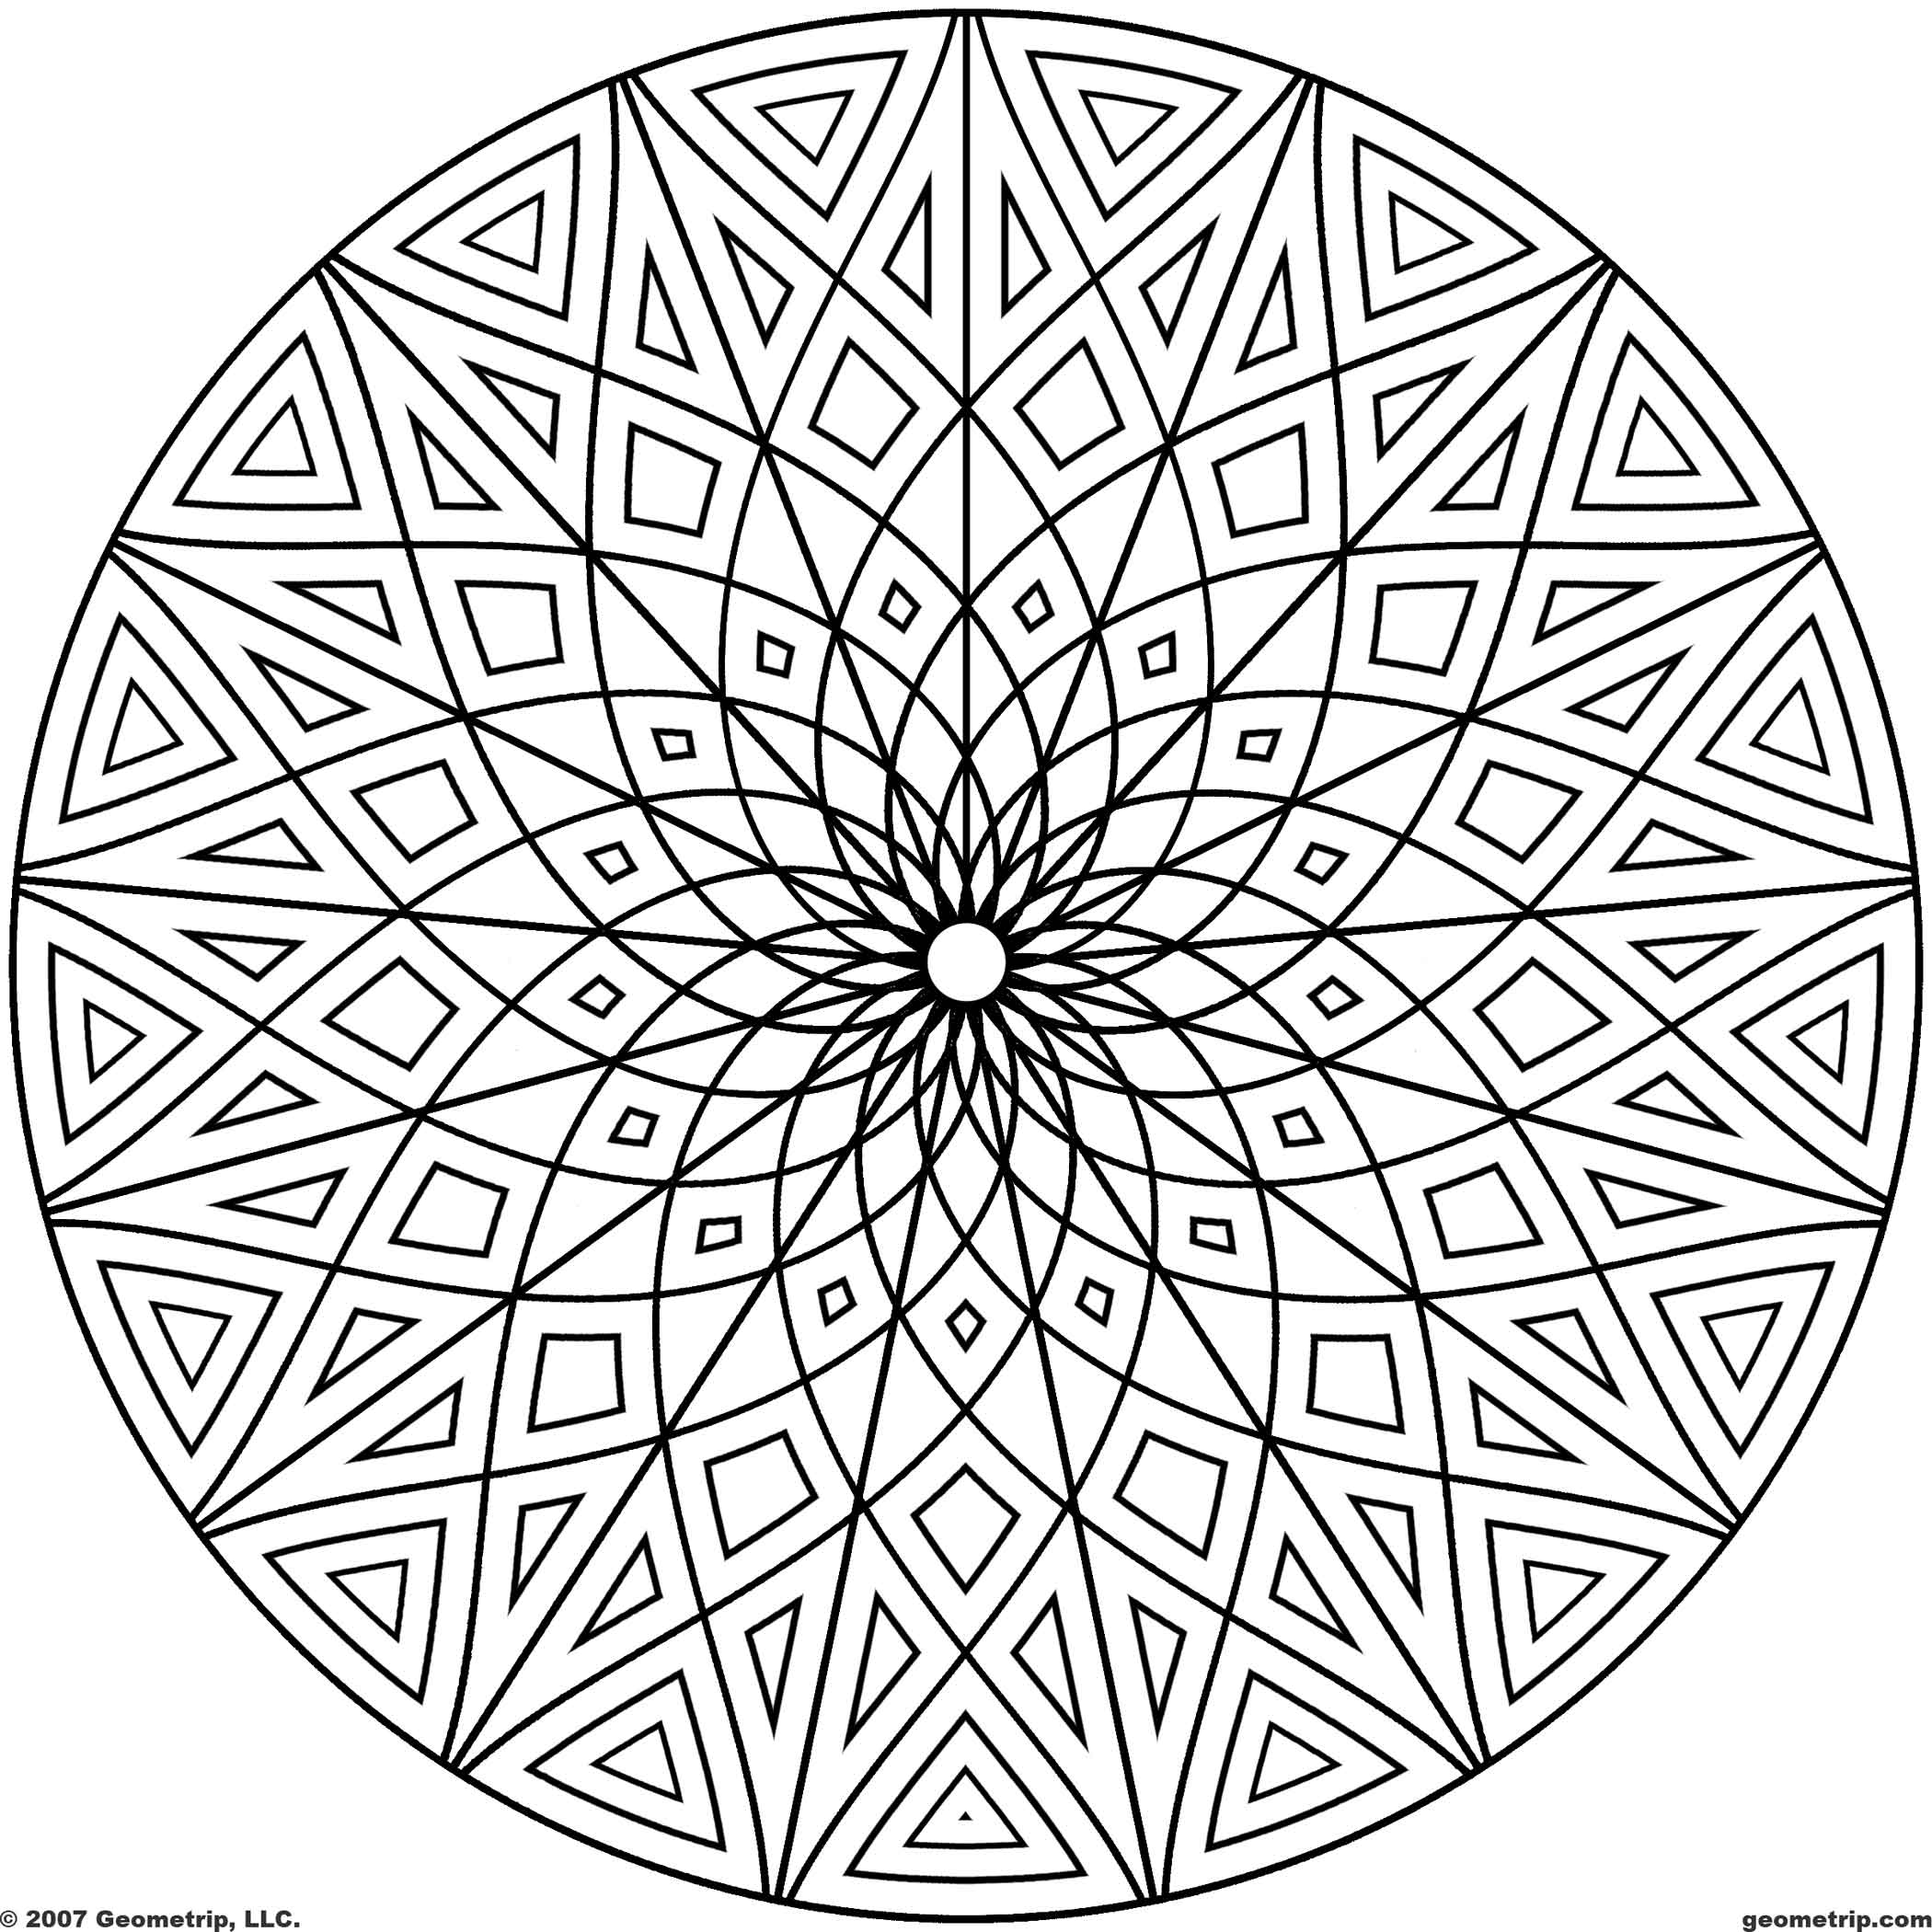 cool patterns to colour in 16 cool designs patterns to color images cool design in patterns cool colour to